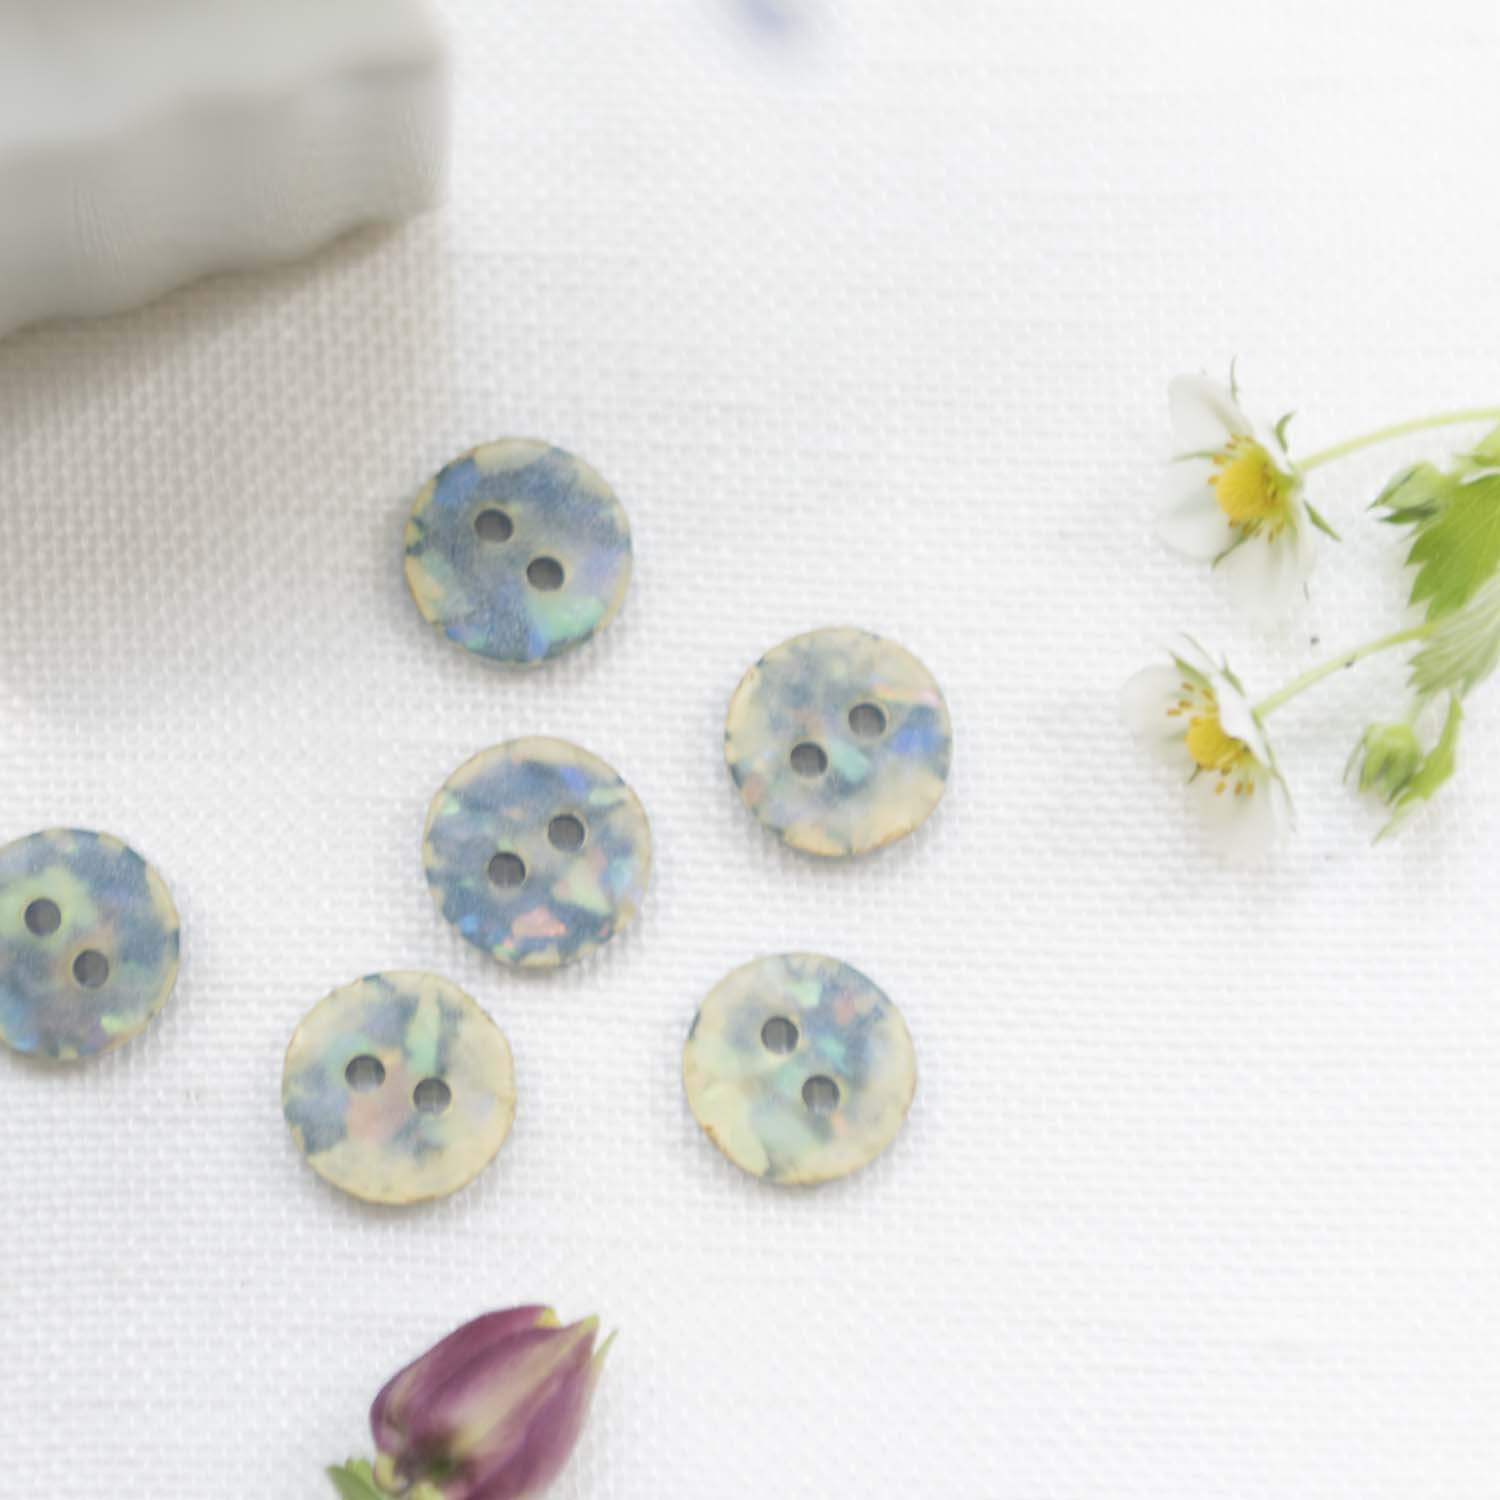 Vintage button blue with gritters